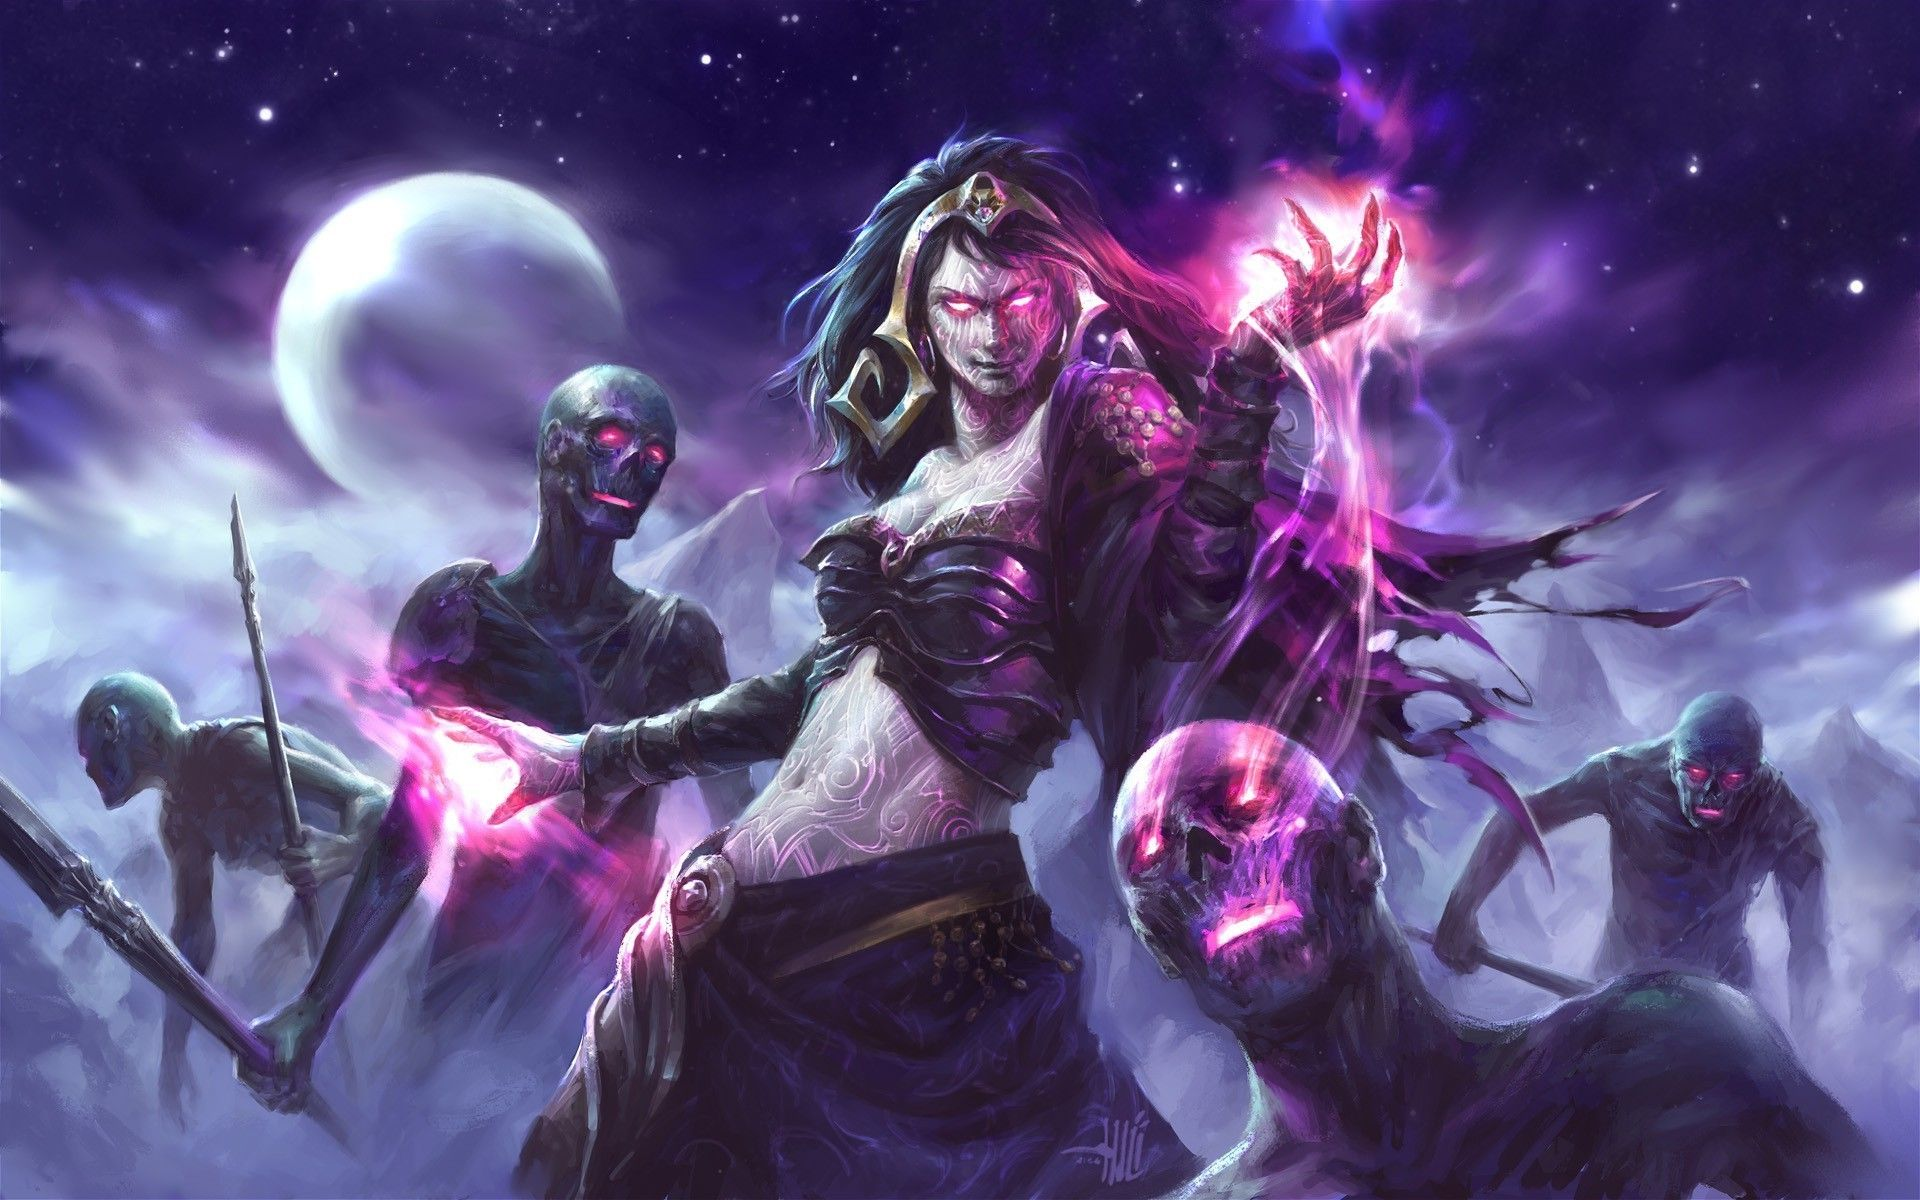 1920x1200 Fantasy Art Magic The Gathering Witch Zombies